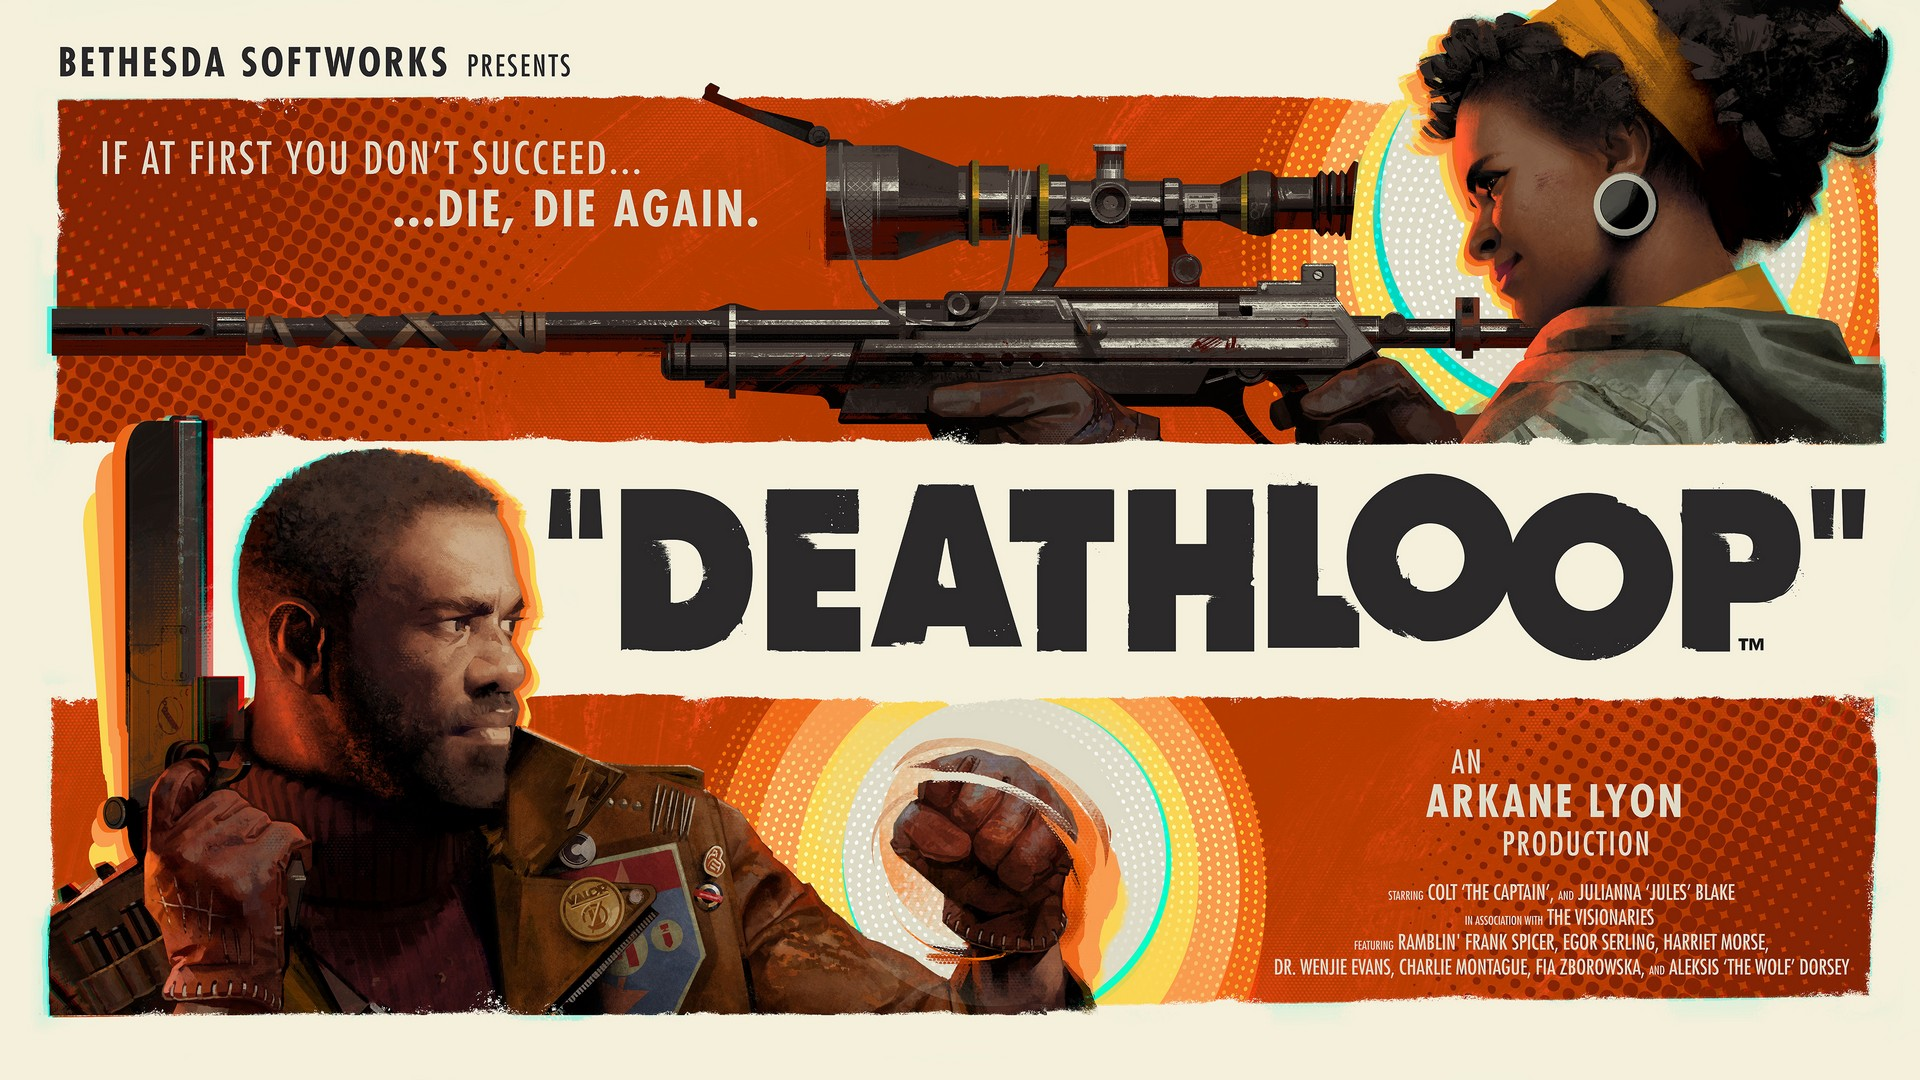 Future, Madison Beer & Steve Aoki Celebrate The Launch Of DEATHLOOP With Covers Of The Game's 'Déjà Vu' Soundtrack